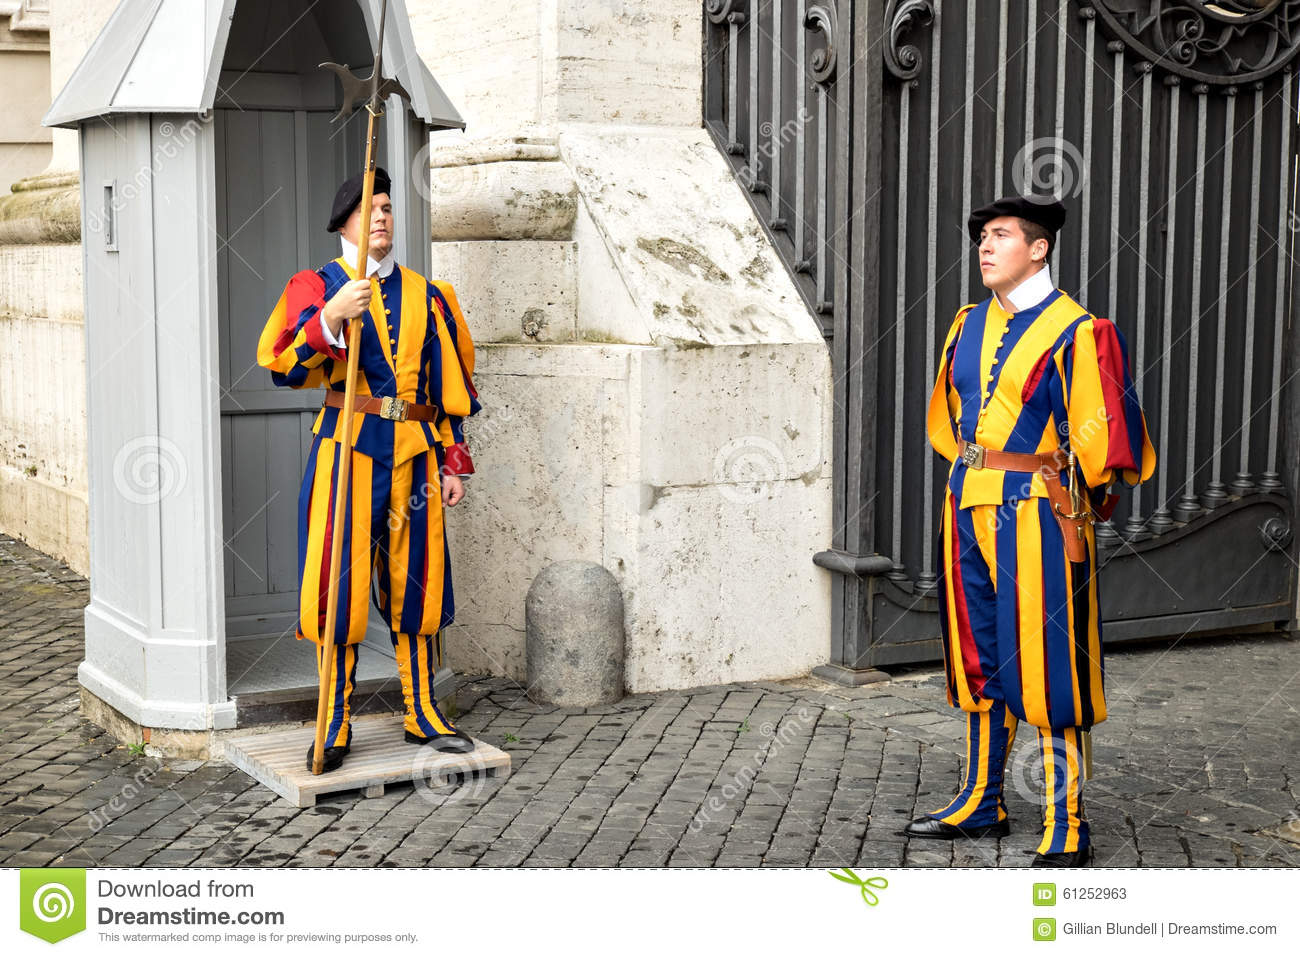 Two Swiss Guards In Traditional Uniform On Duty At A Vatican Gate.